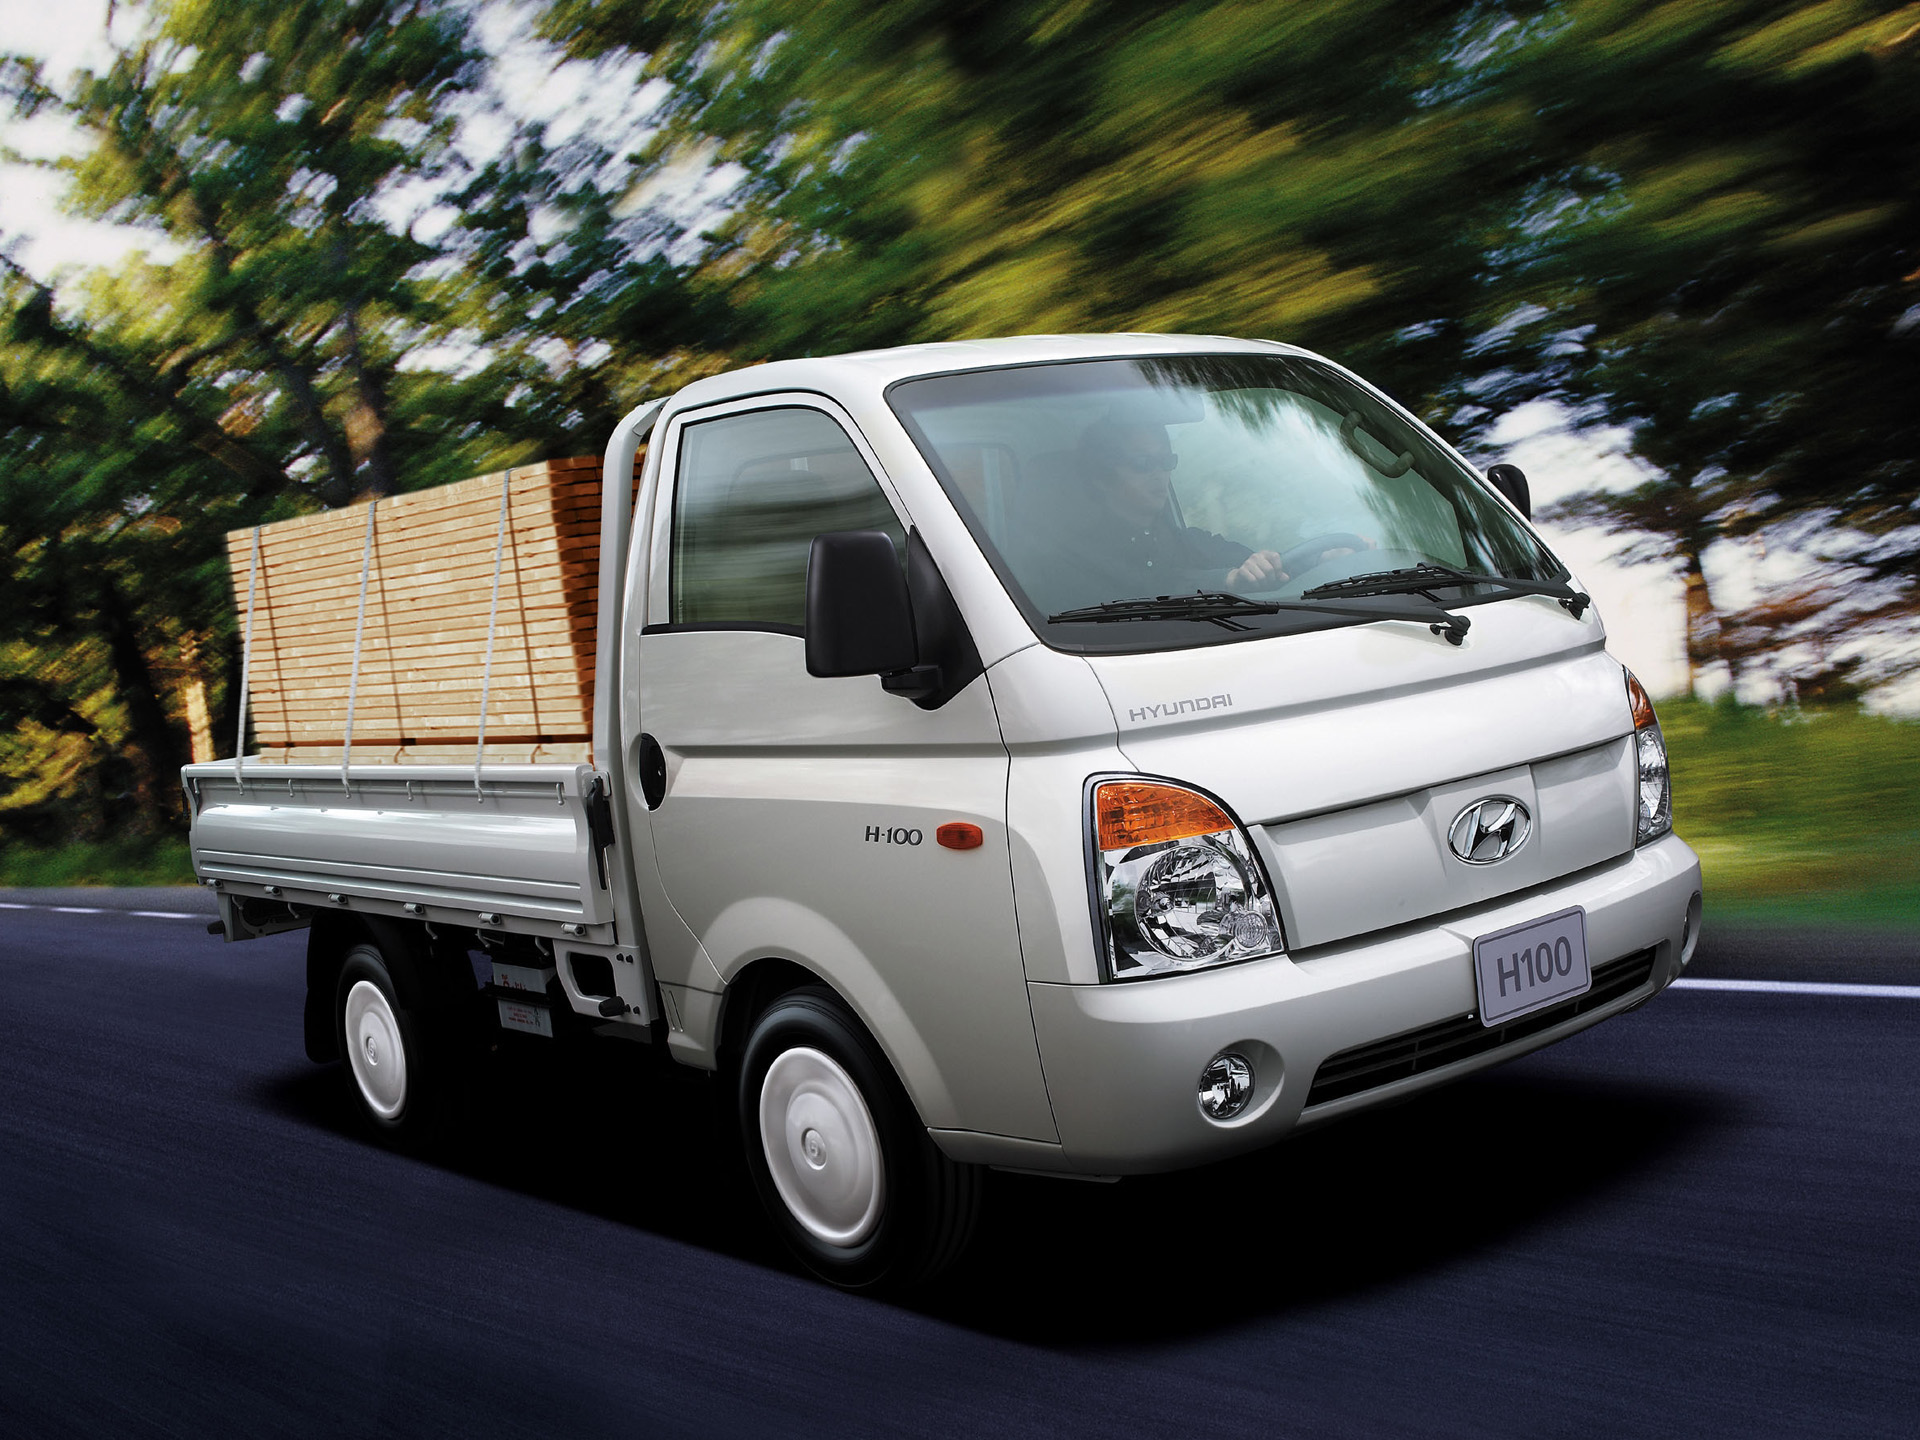 Hyundai H100 Photos - PhotoGallery With 5 Pics